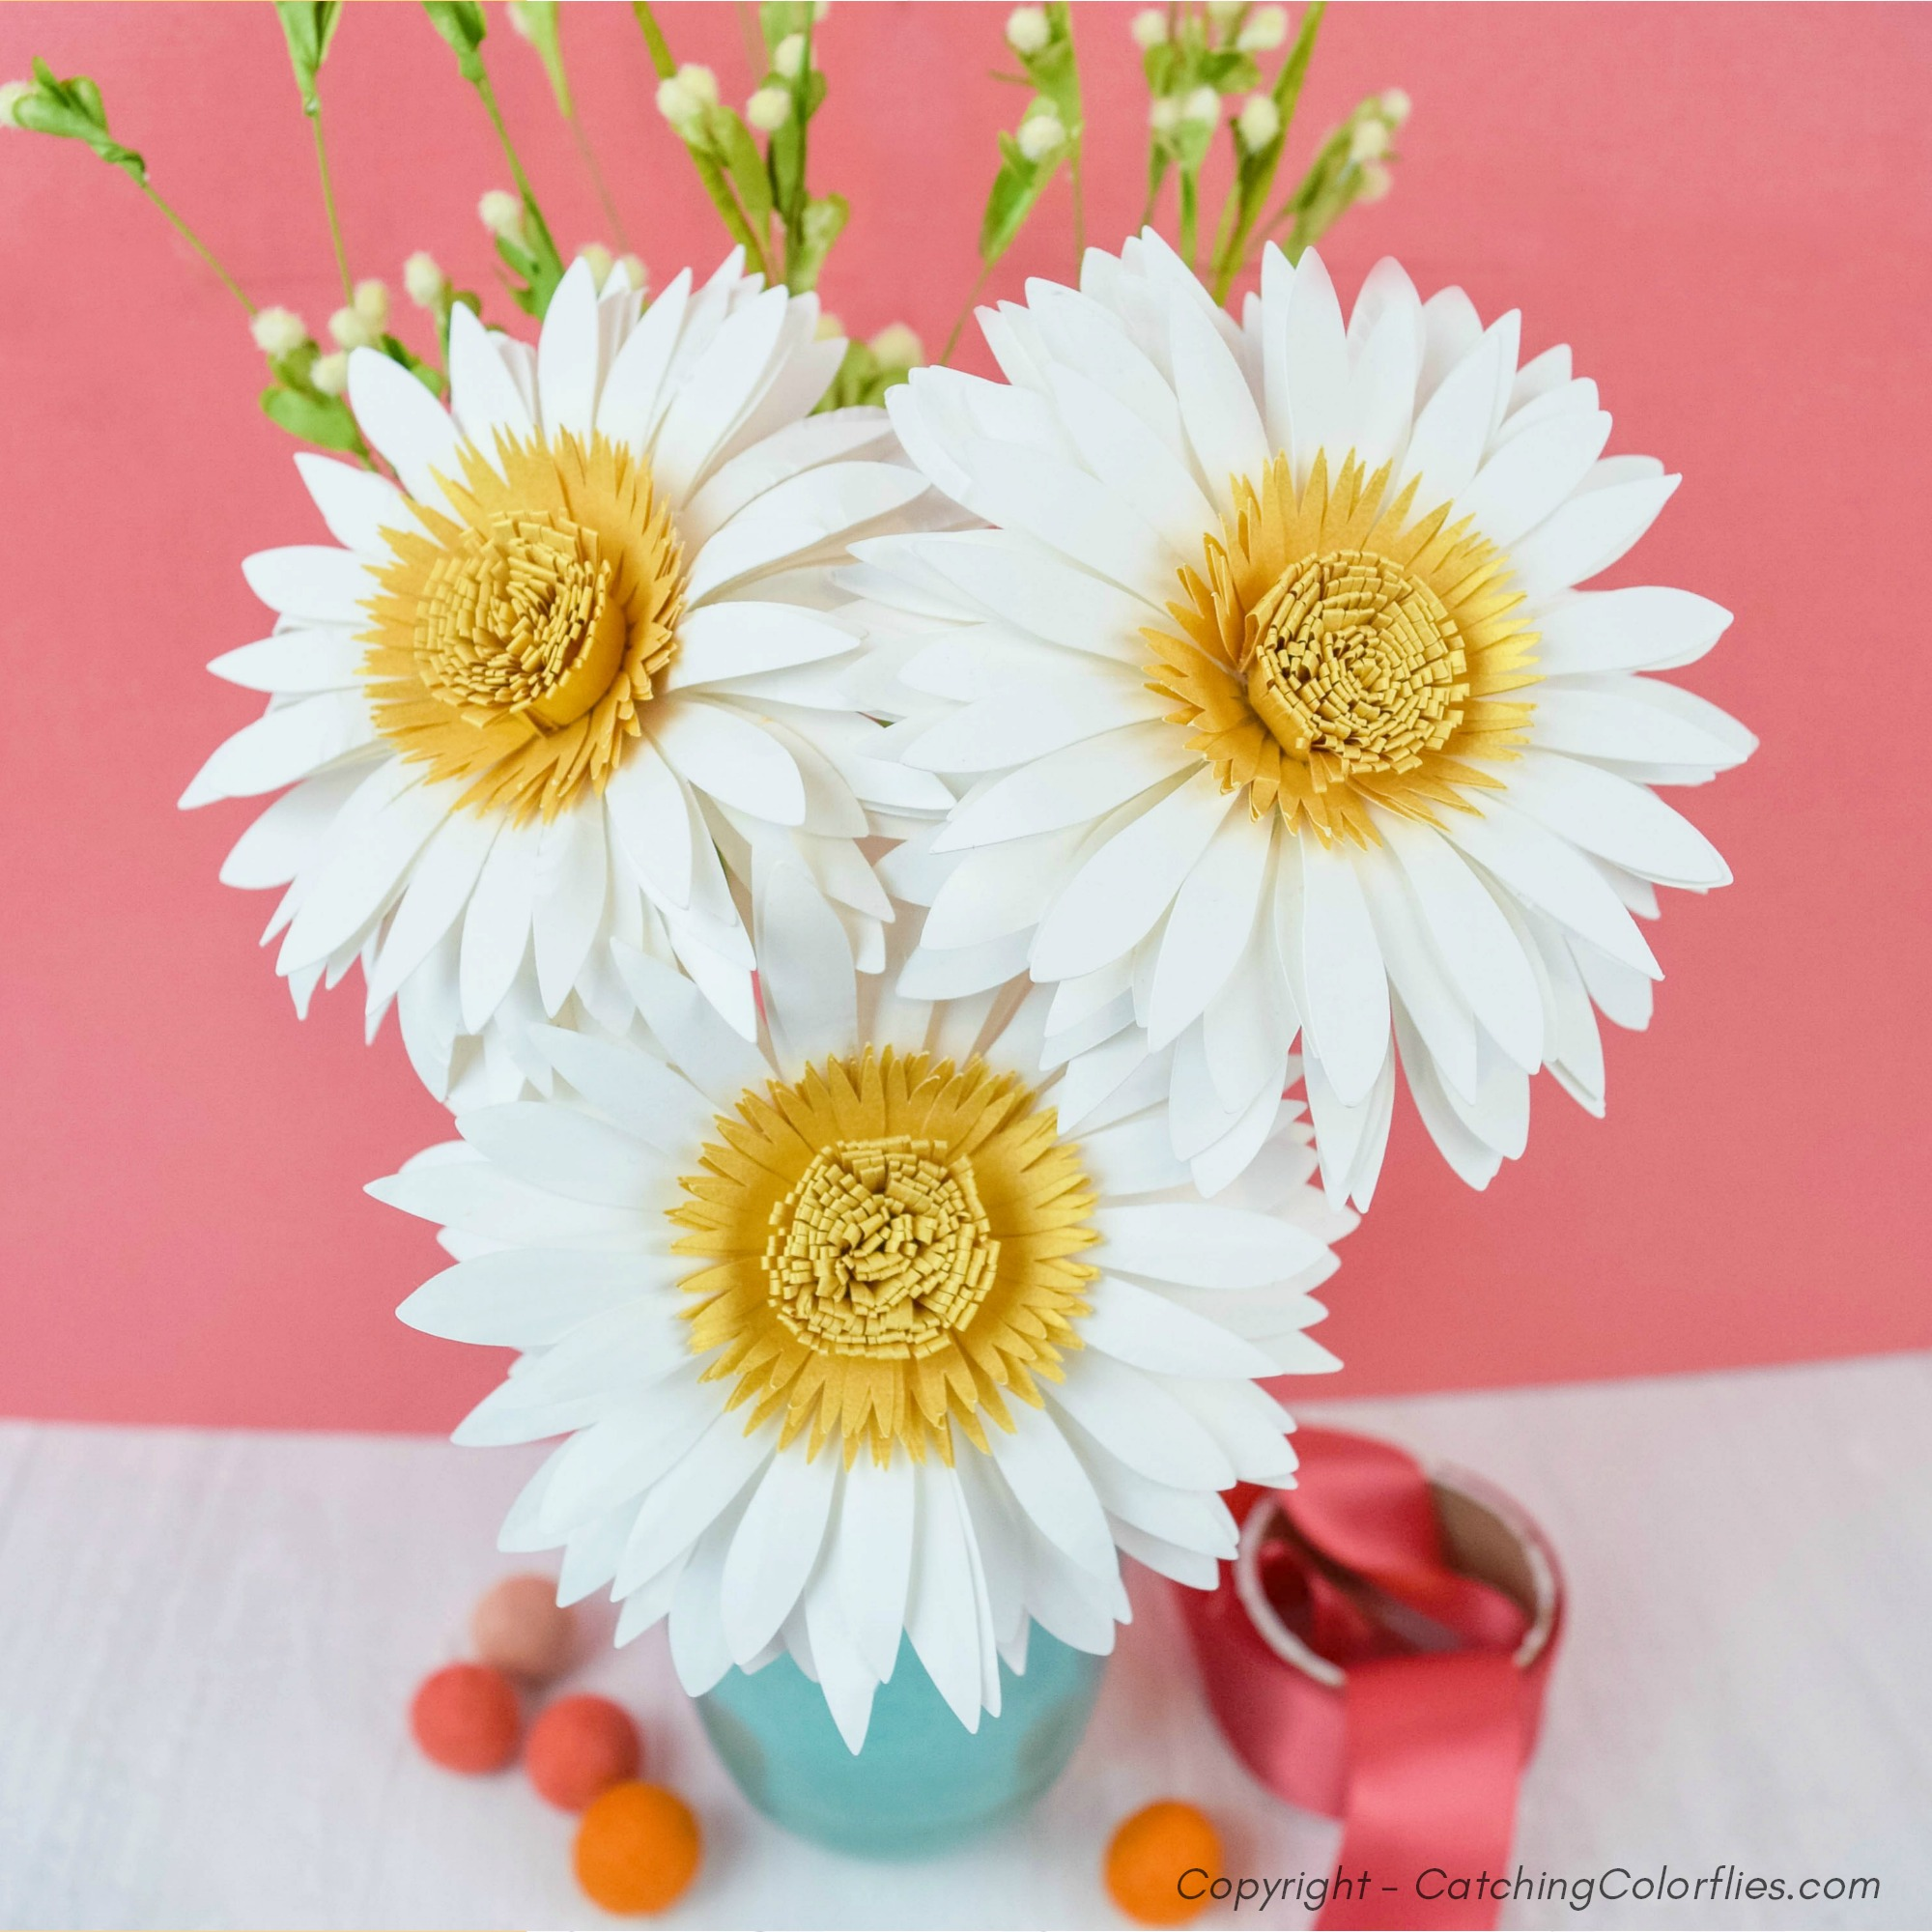 How to Make Paper Daisy Flowers Step by Step